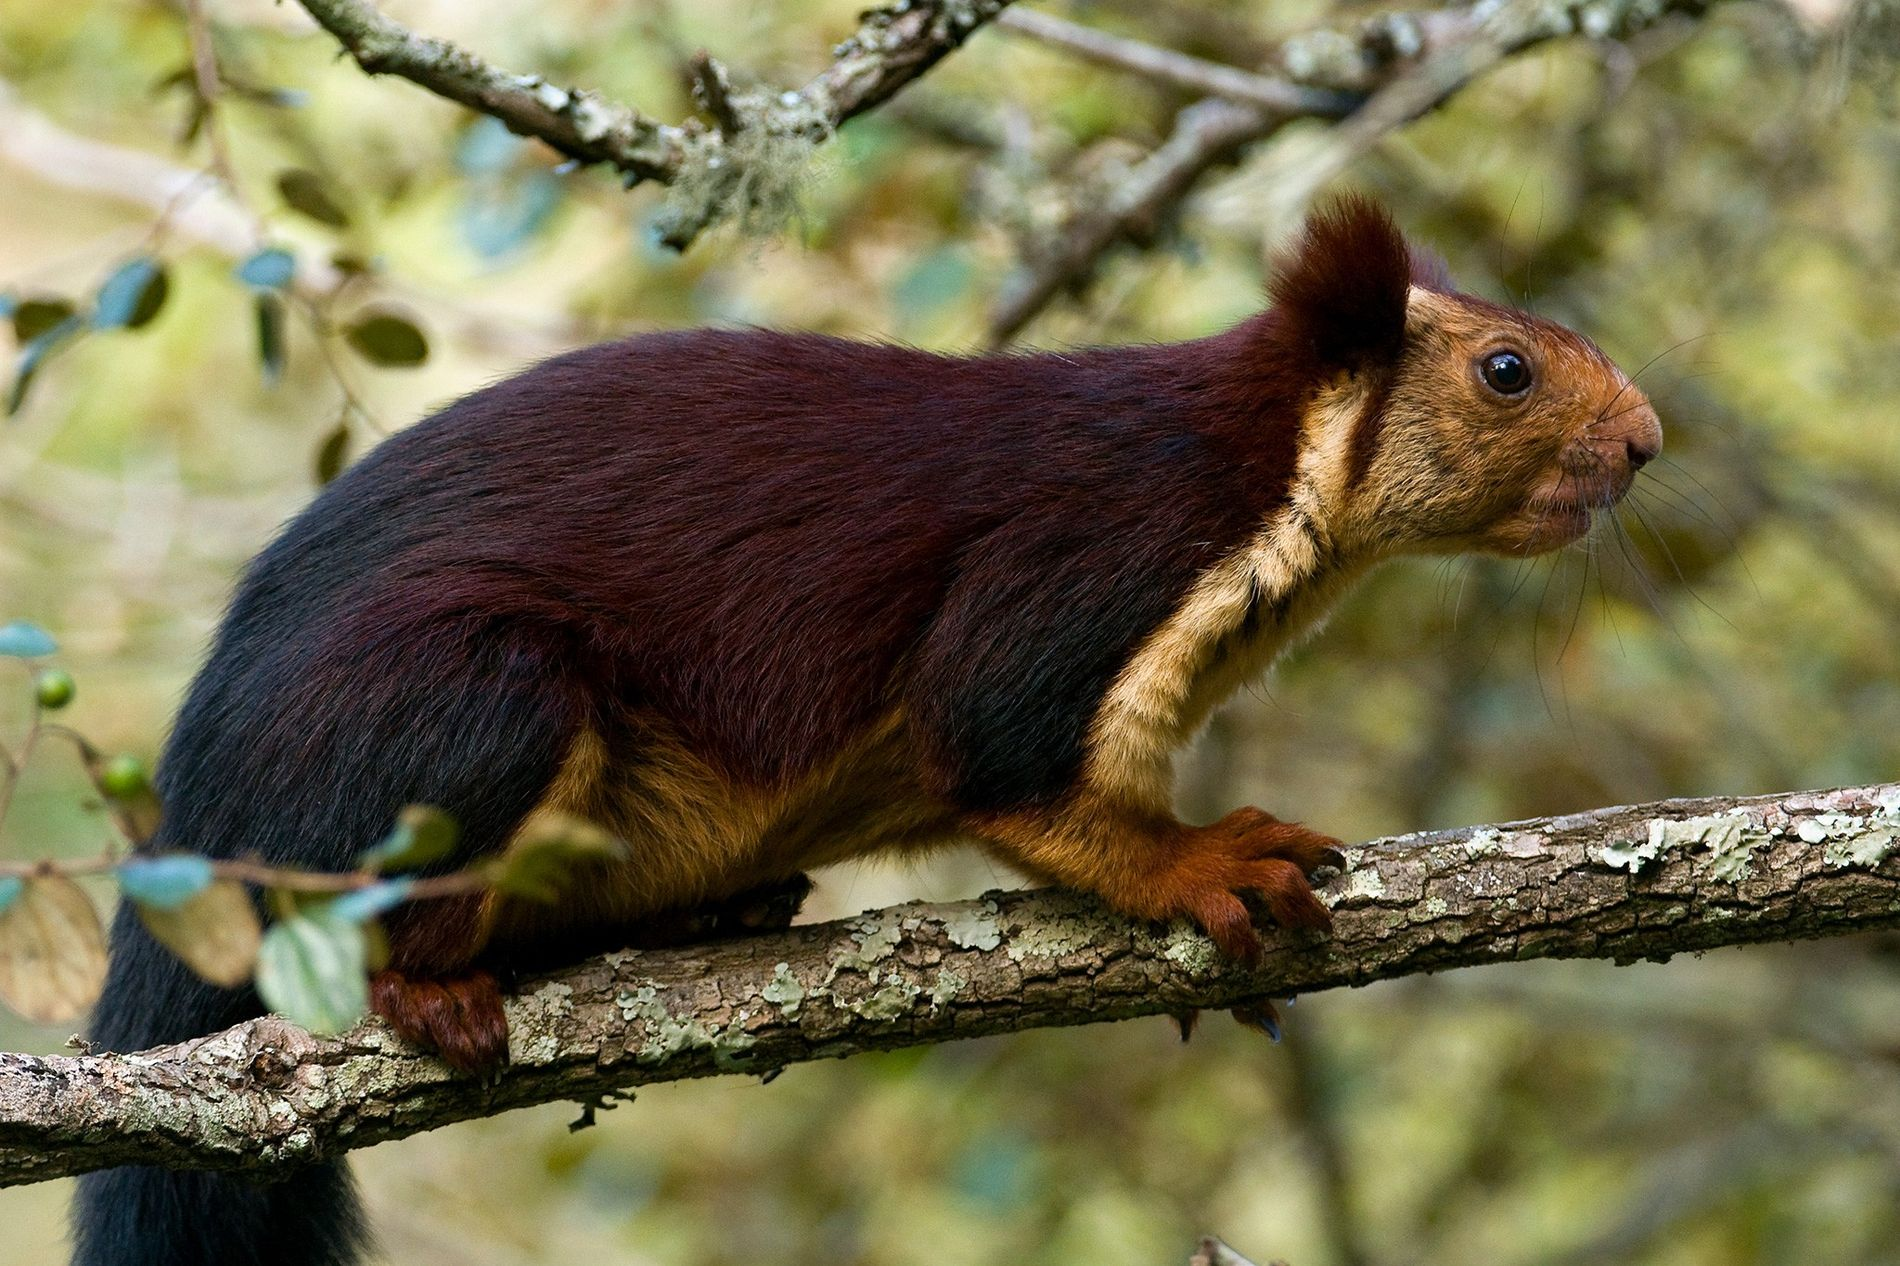 The Indian giant squirrel (pictured, an animal in Karnataka, India), can reach lengths of 18 inches.